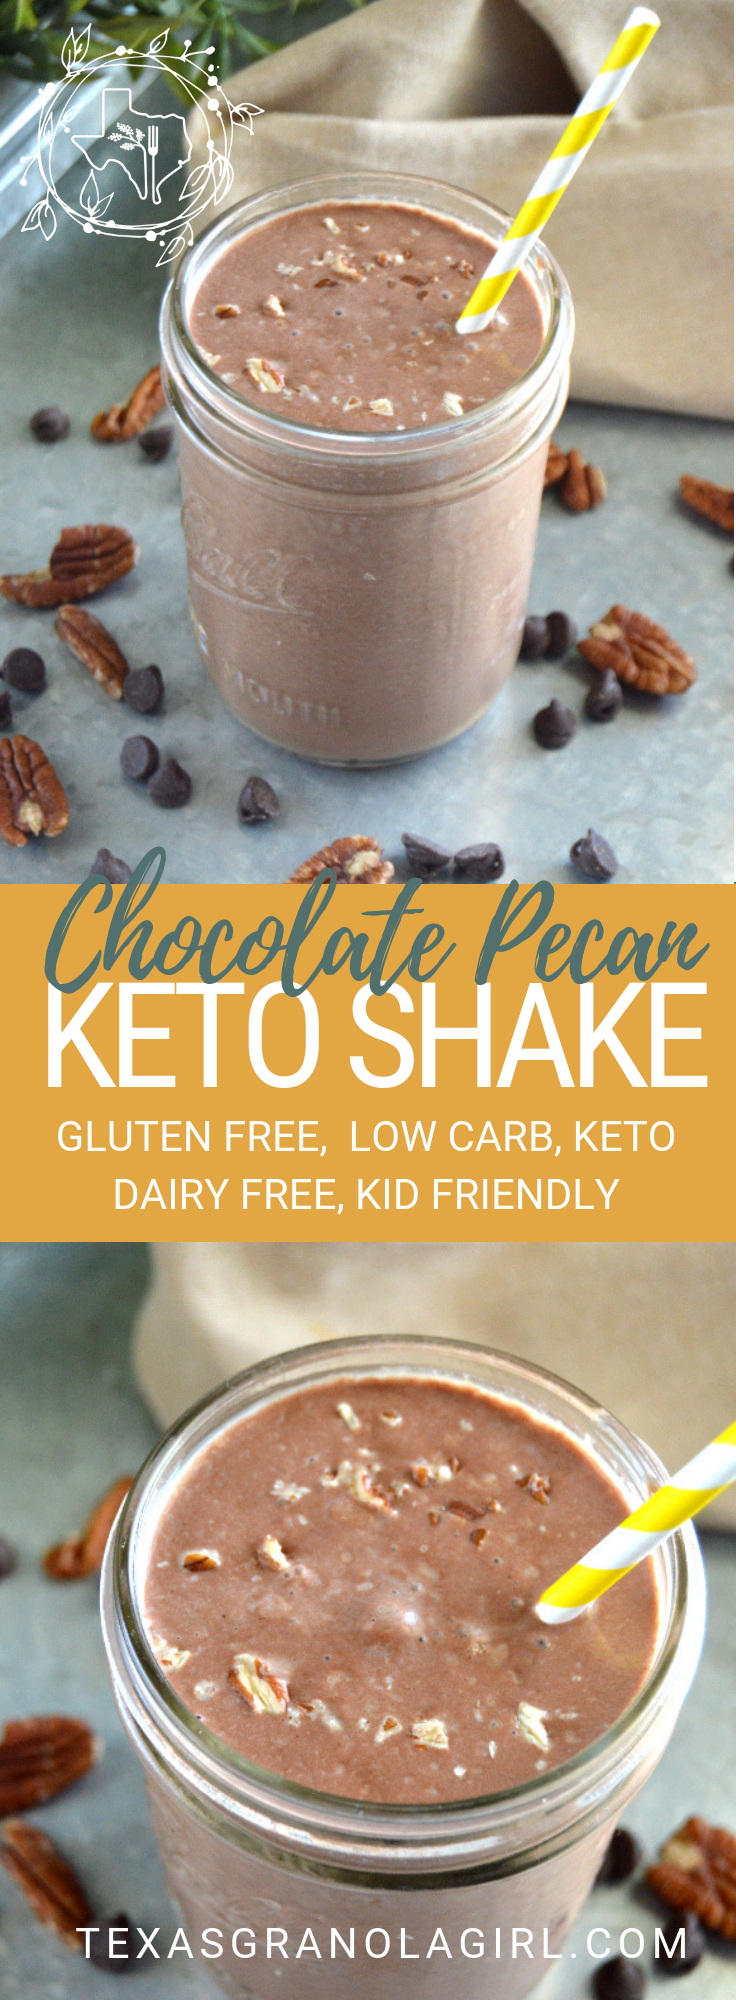 Dairy Free Chocolate Pecan Keto Shake #dairyfreesmoothie When you're in need of a sweet, chocolaty treat, whip up this Chocolate Pecan Keto Shake!  Dairy free and gluten free, this keto shake is a must have in your recipe arsenal!  4 net carbs for the whole recipe! #dairyfreesmoothie